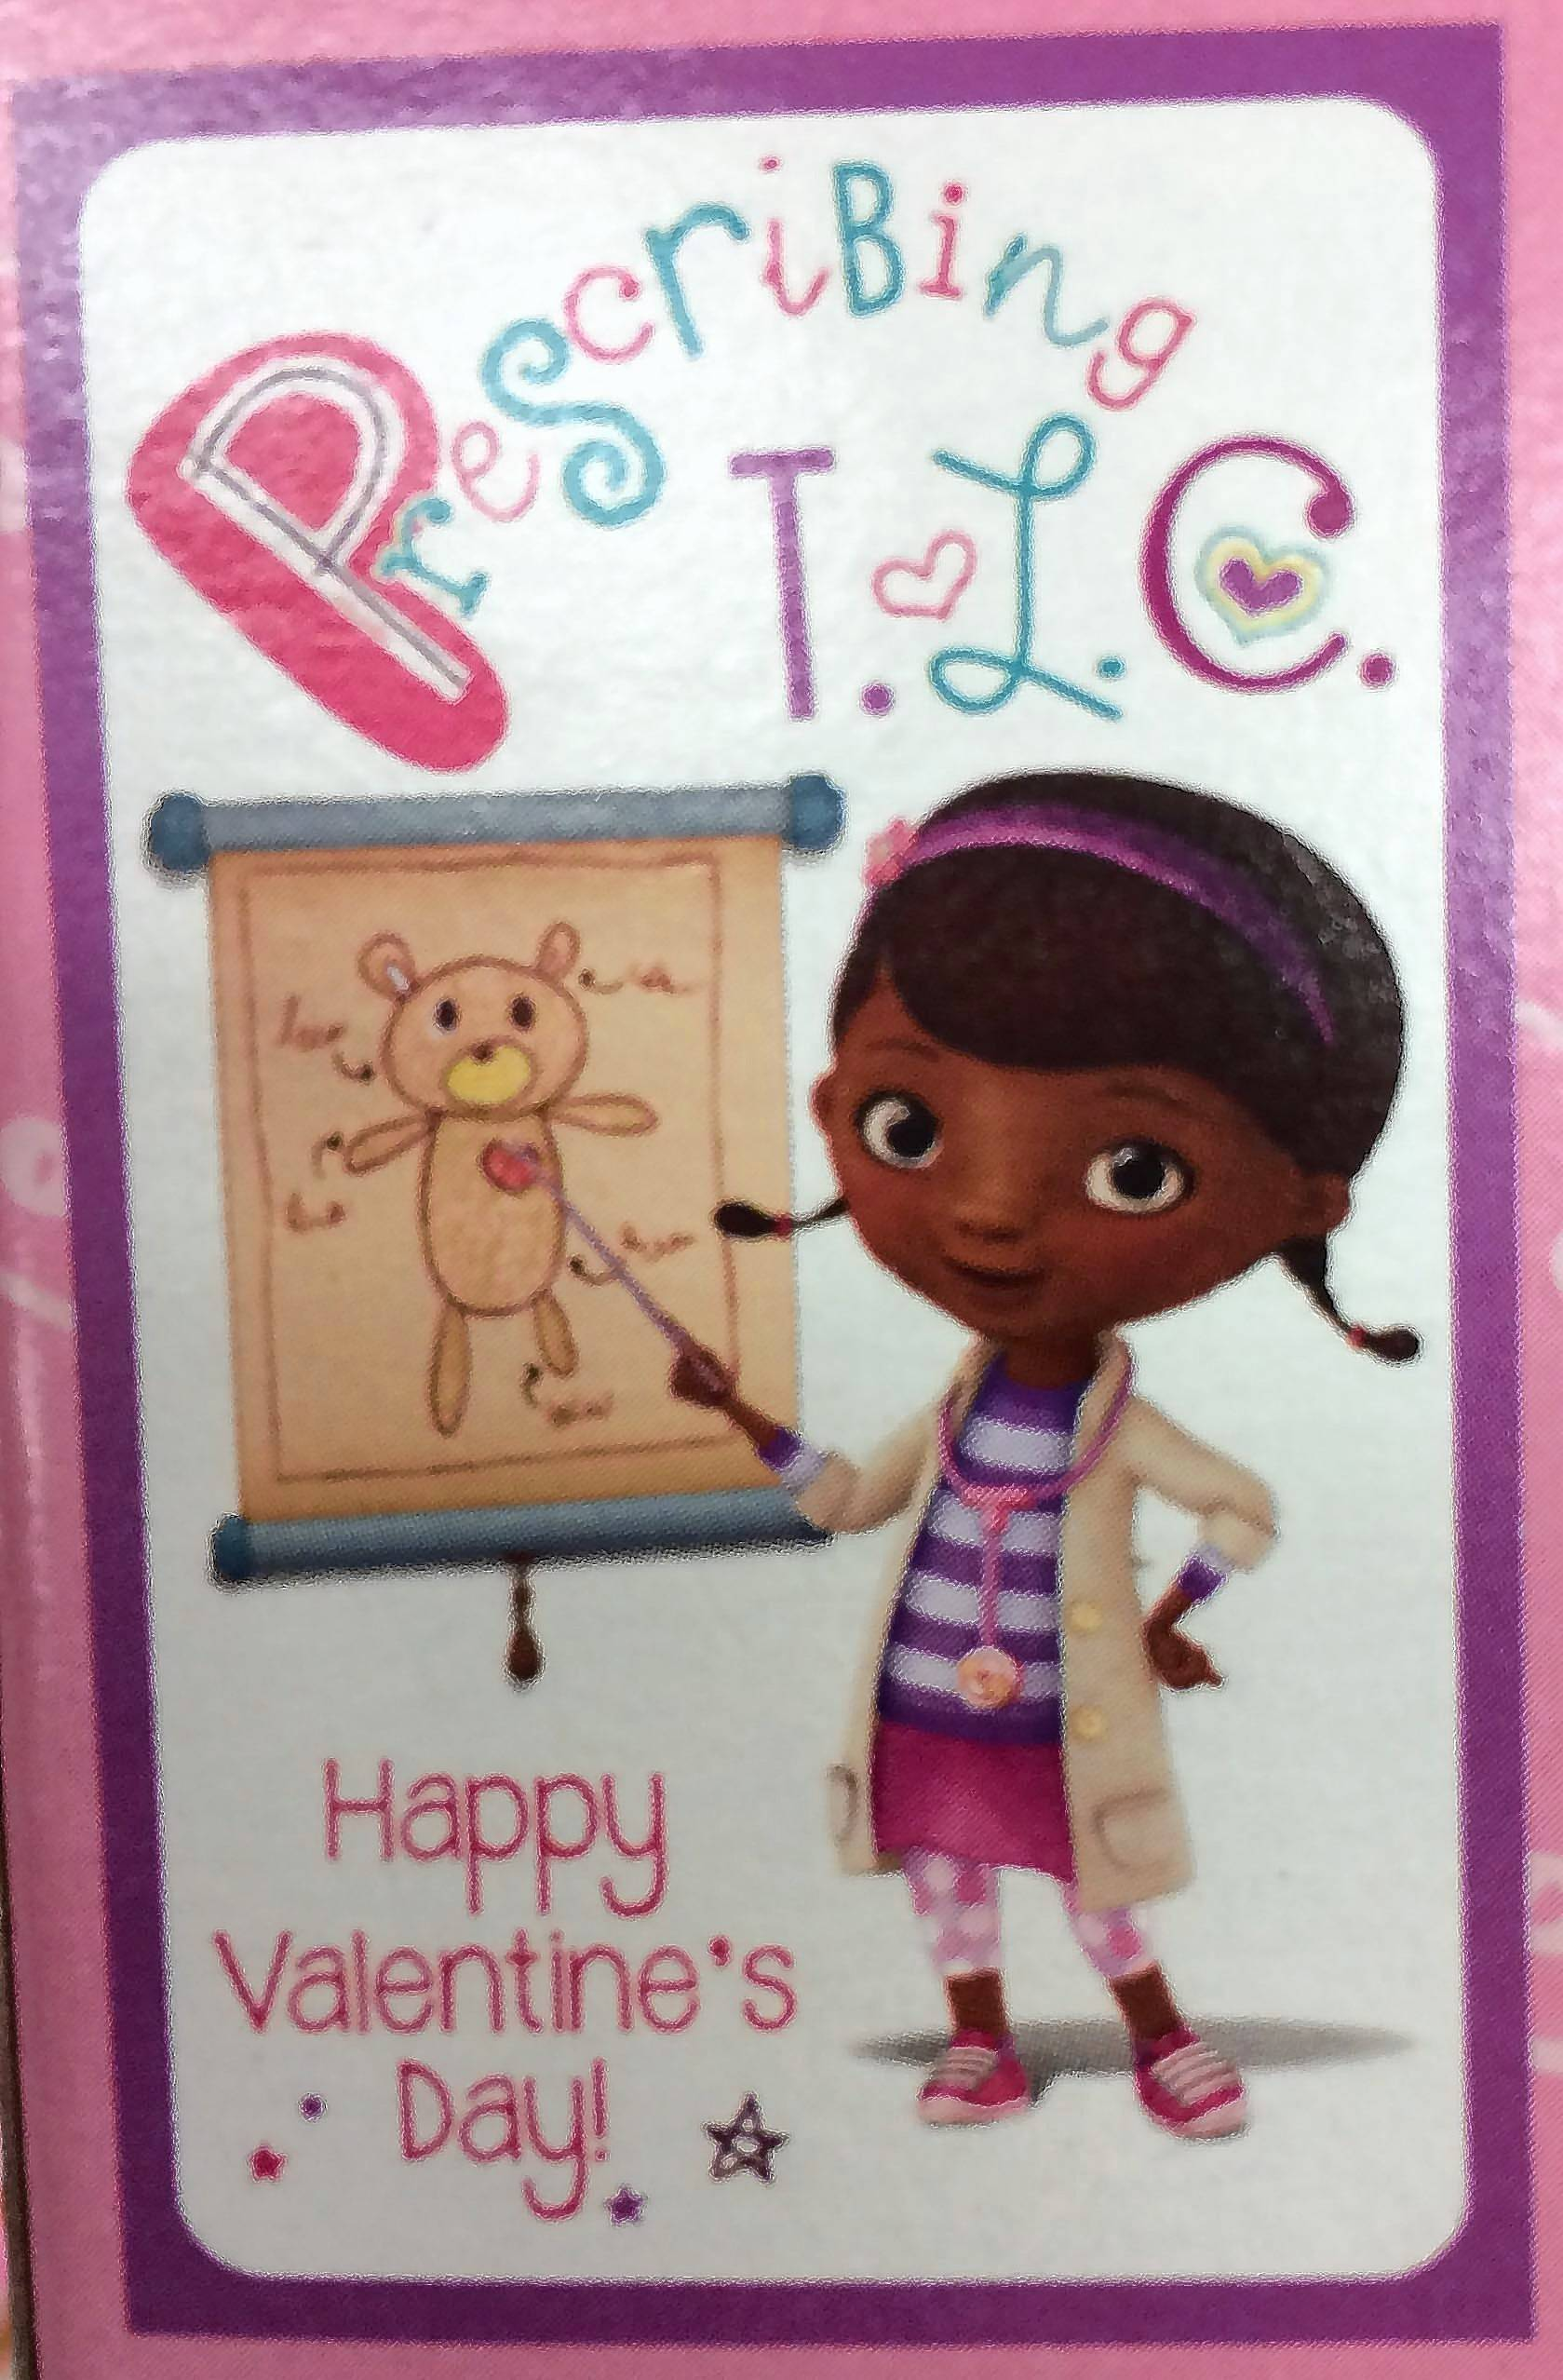 It might be corny, but this Valentine's Day card featuring Disney's Doc McStuffins shouldn't hurt any feelings.